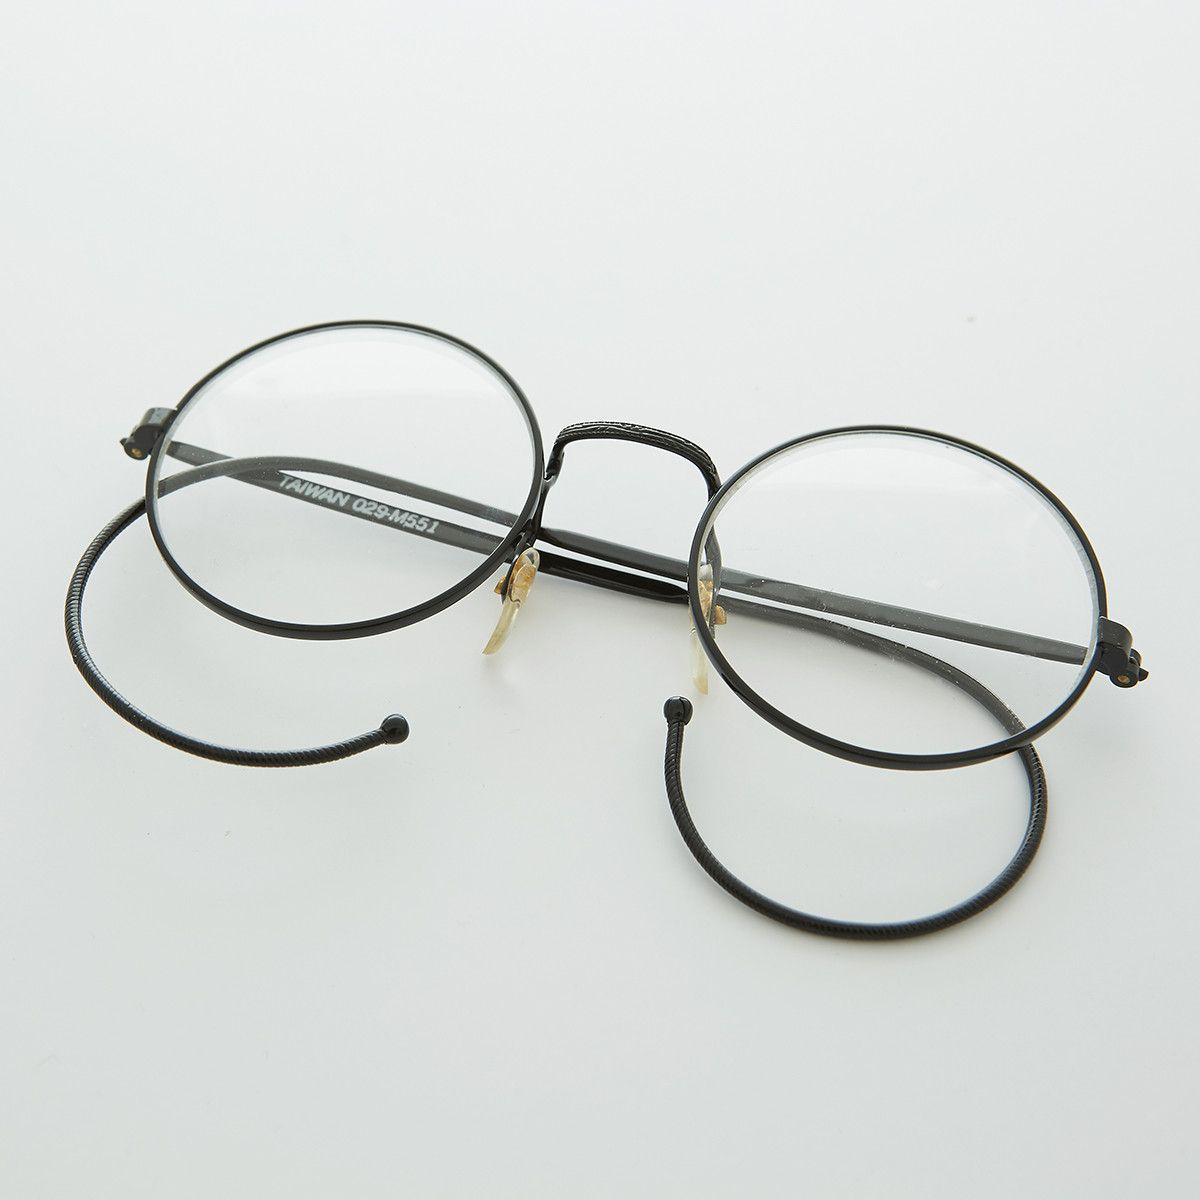 3b5e16ed63 Round John Lennon Victorian Spectacle Vintage Eyeglasses with Cable Temples  NOS -RUDY. These small